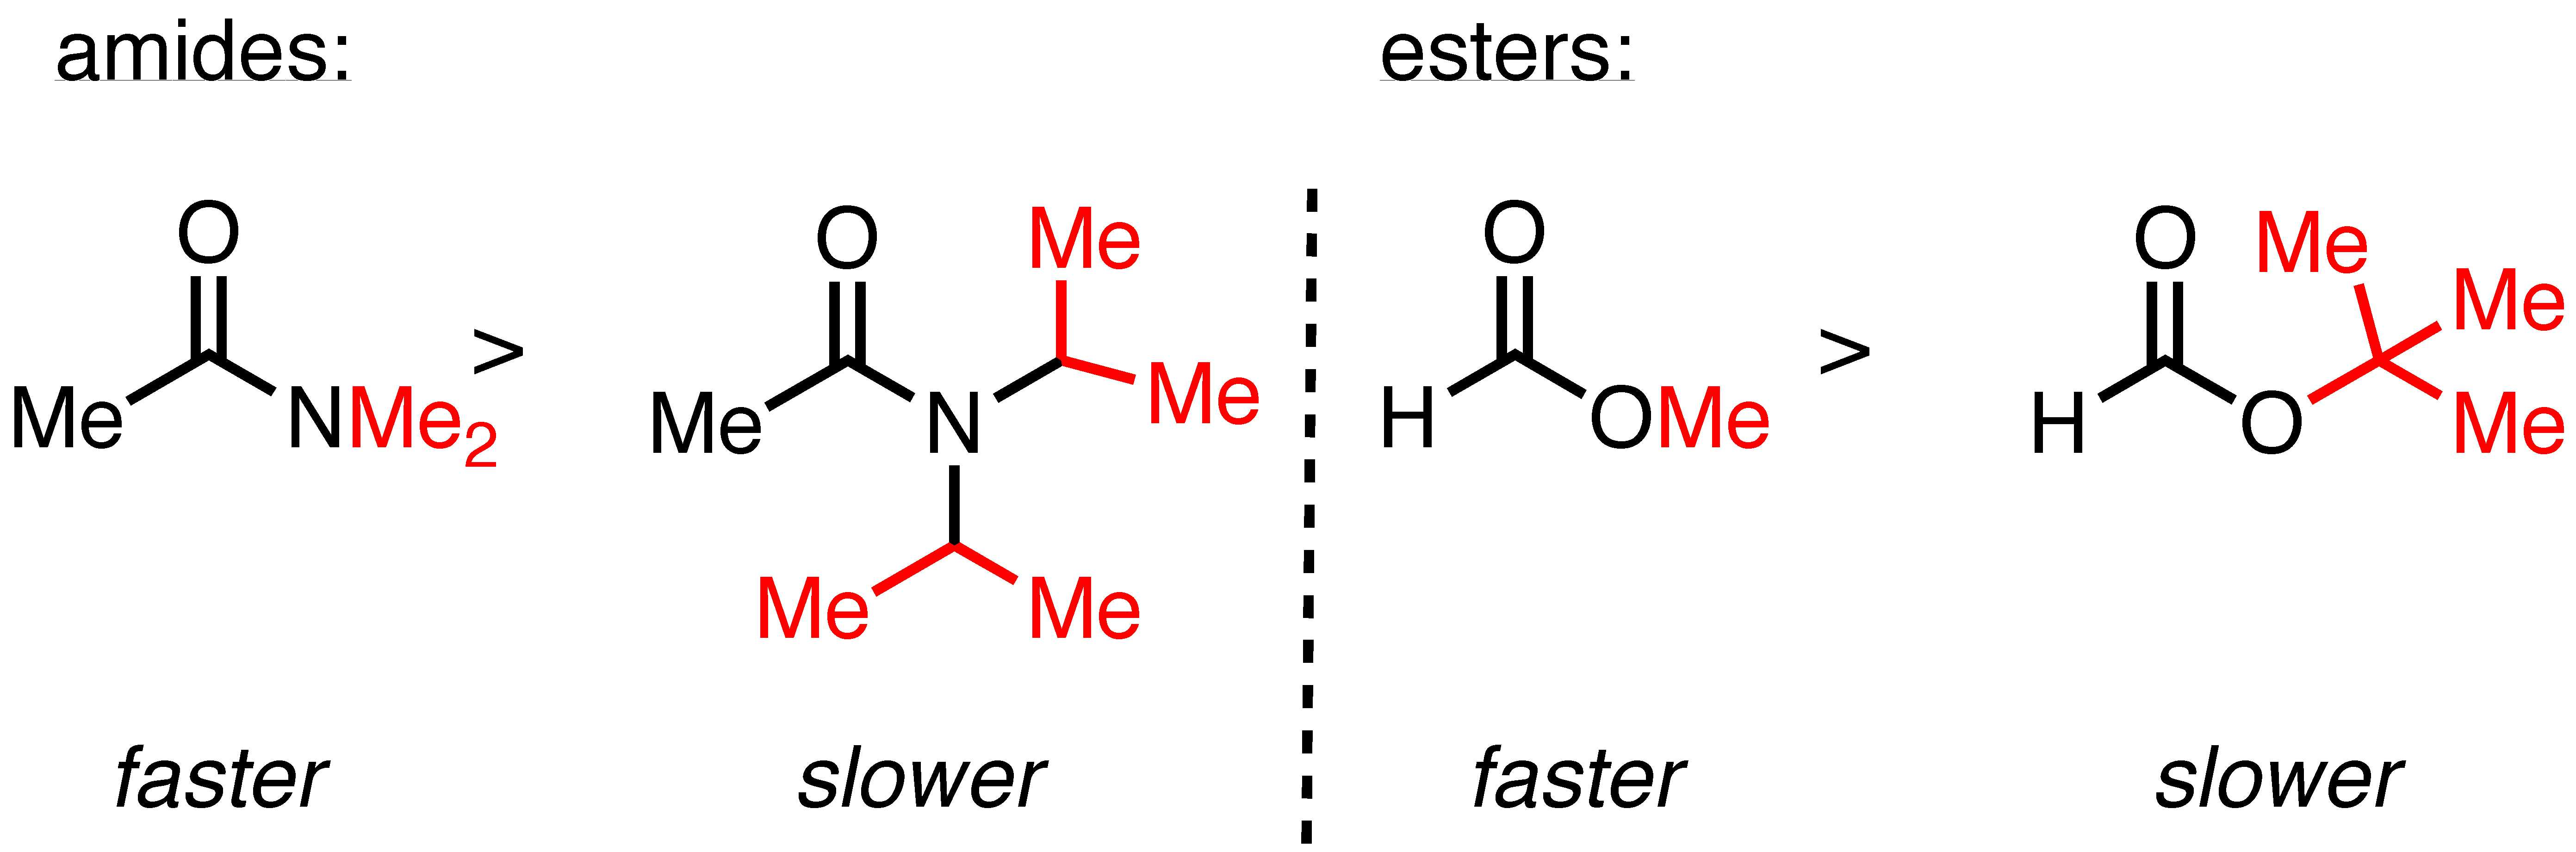 to amides and esters t...